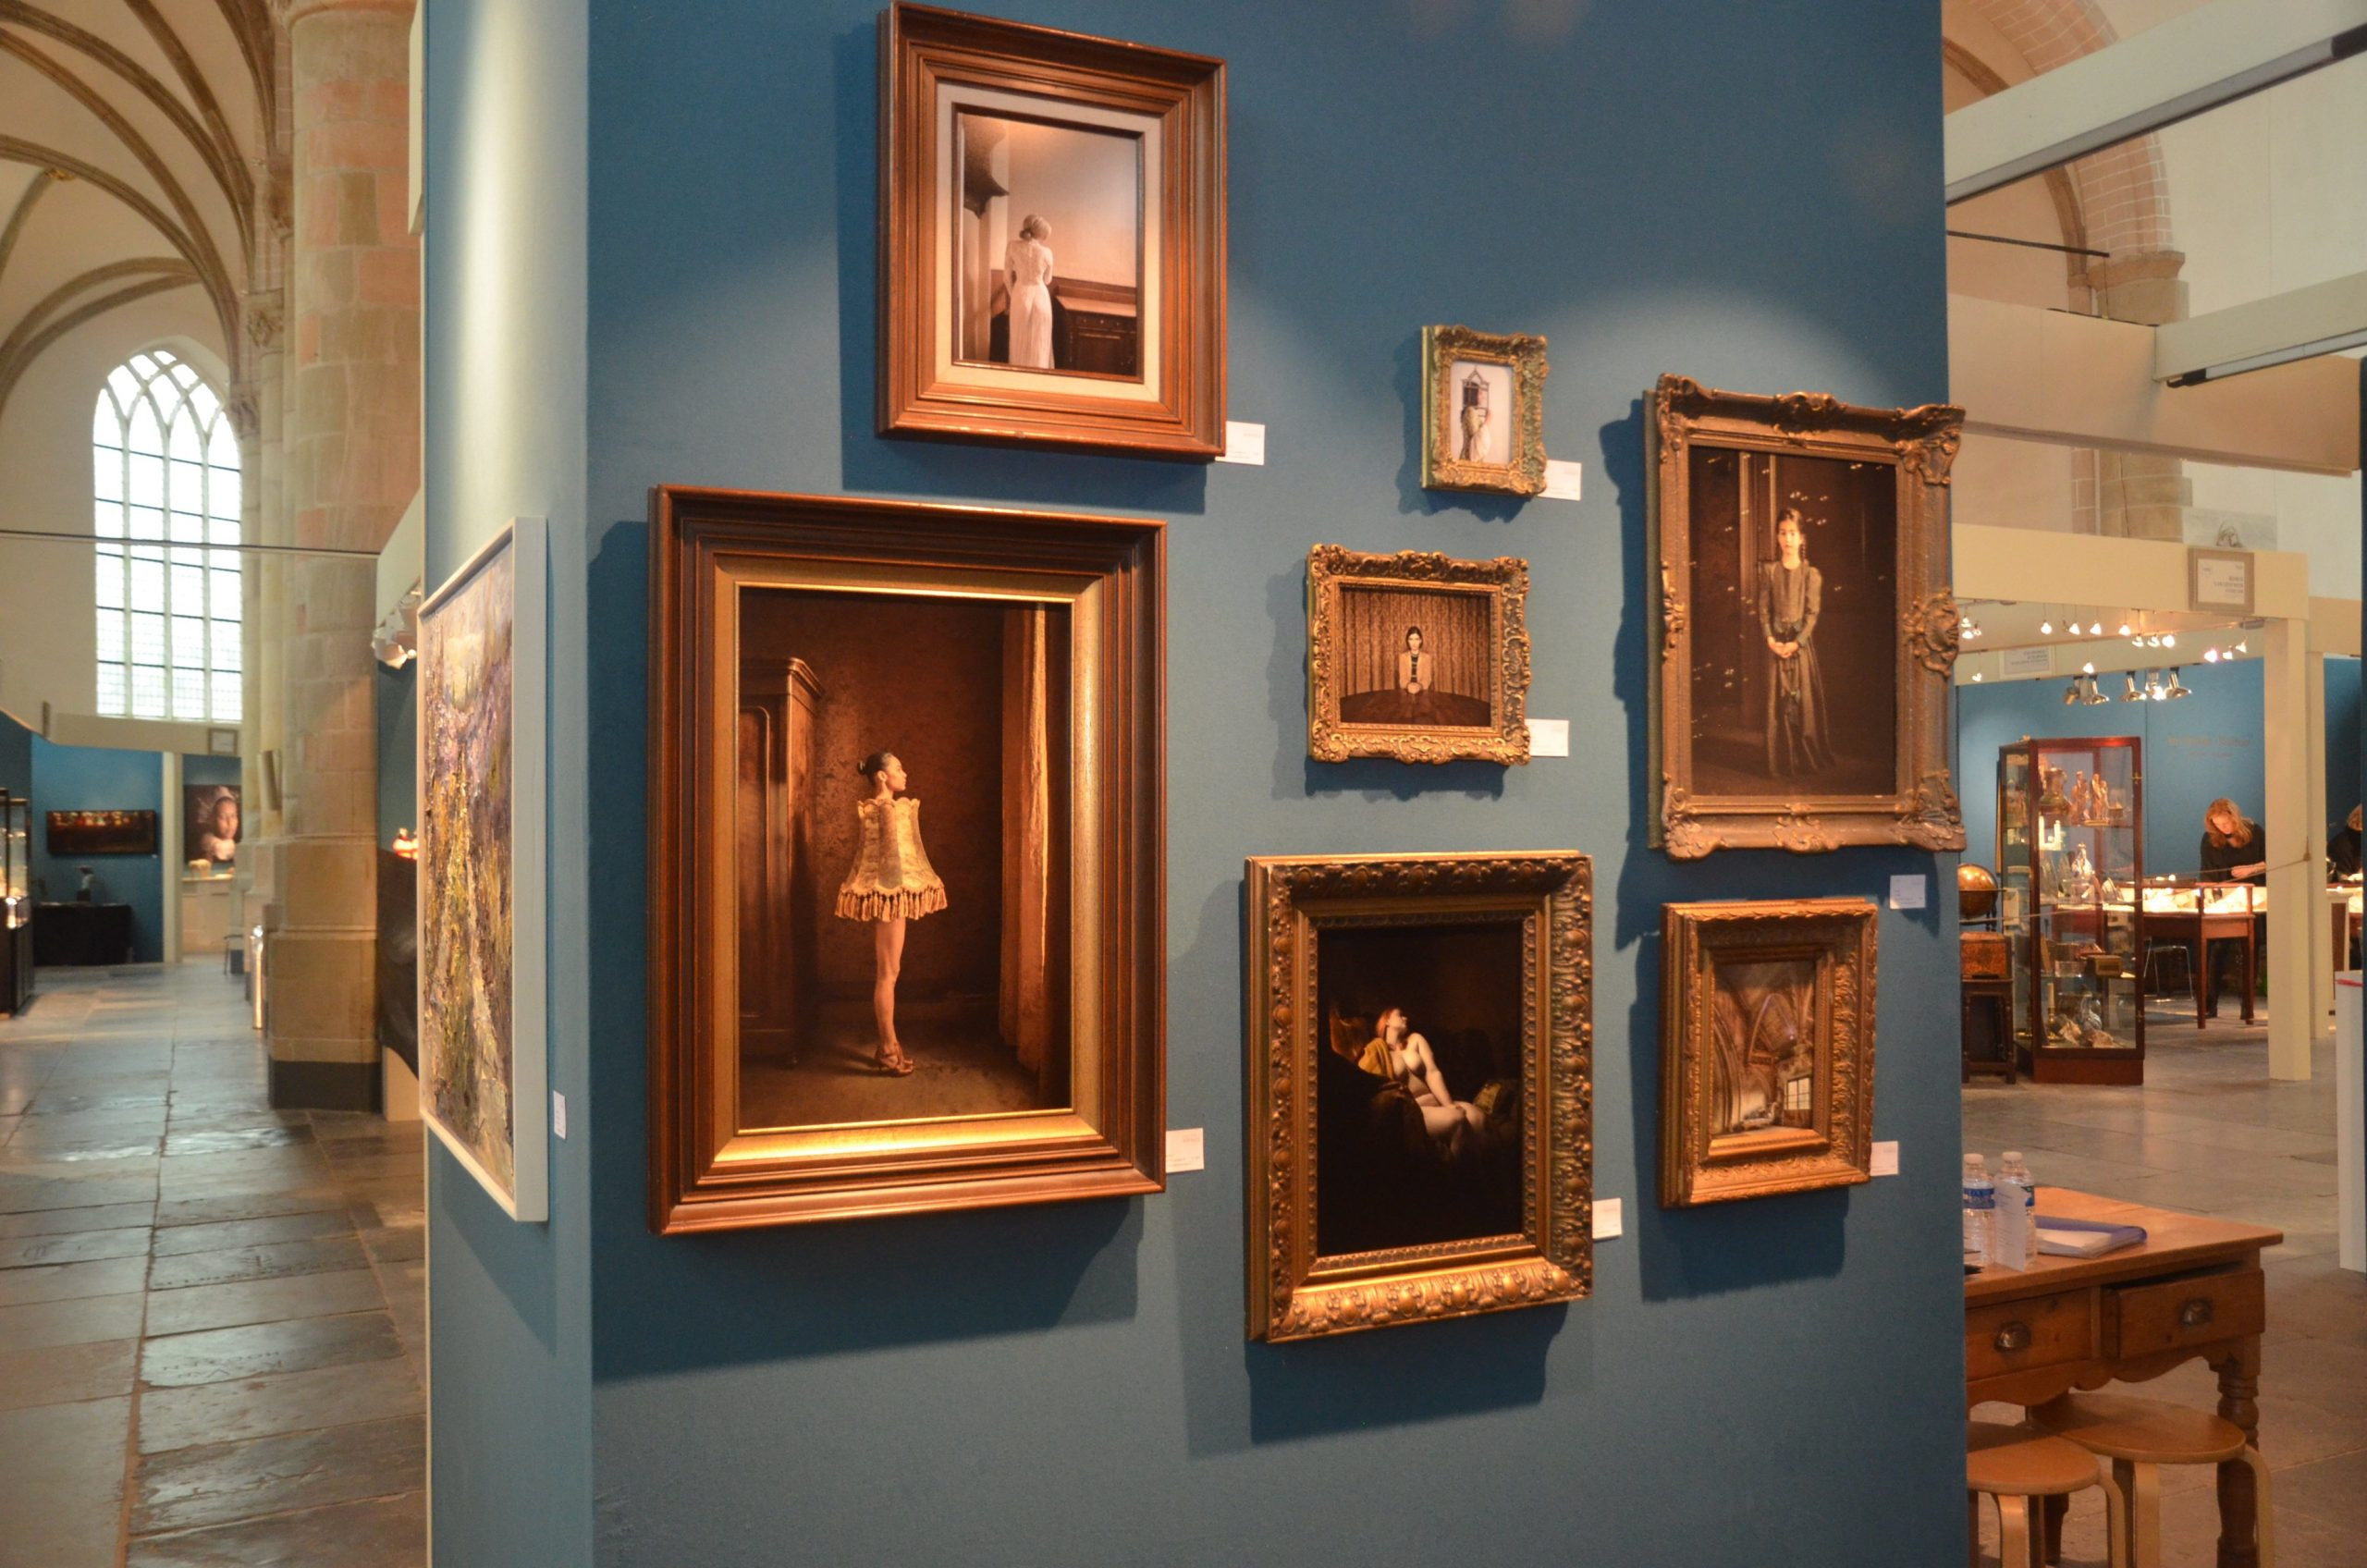 The Art fair Naarden the Art fair will let you enjoy all the eye-catchers of the fair